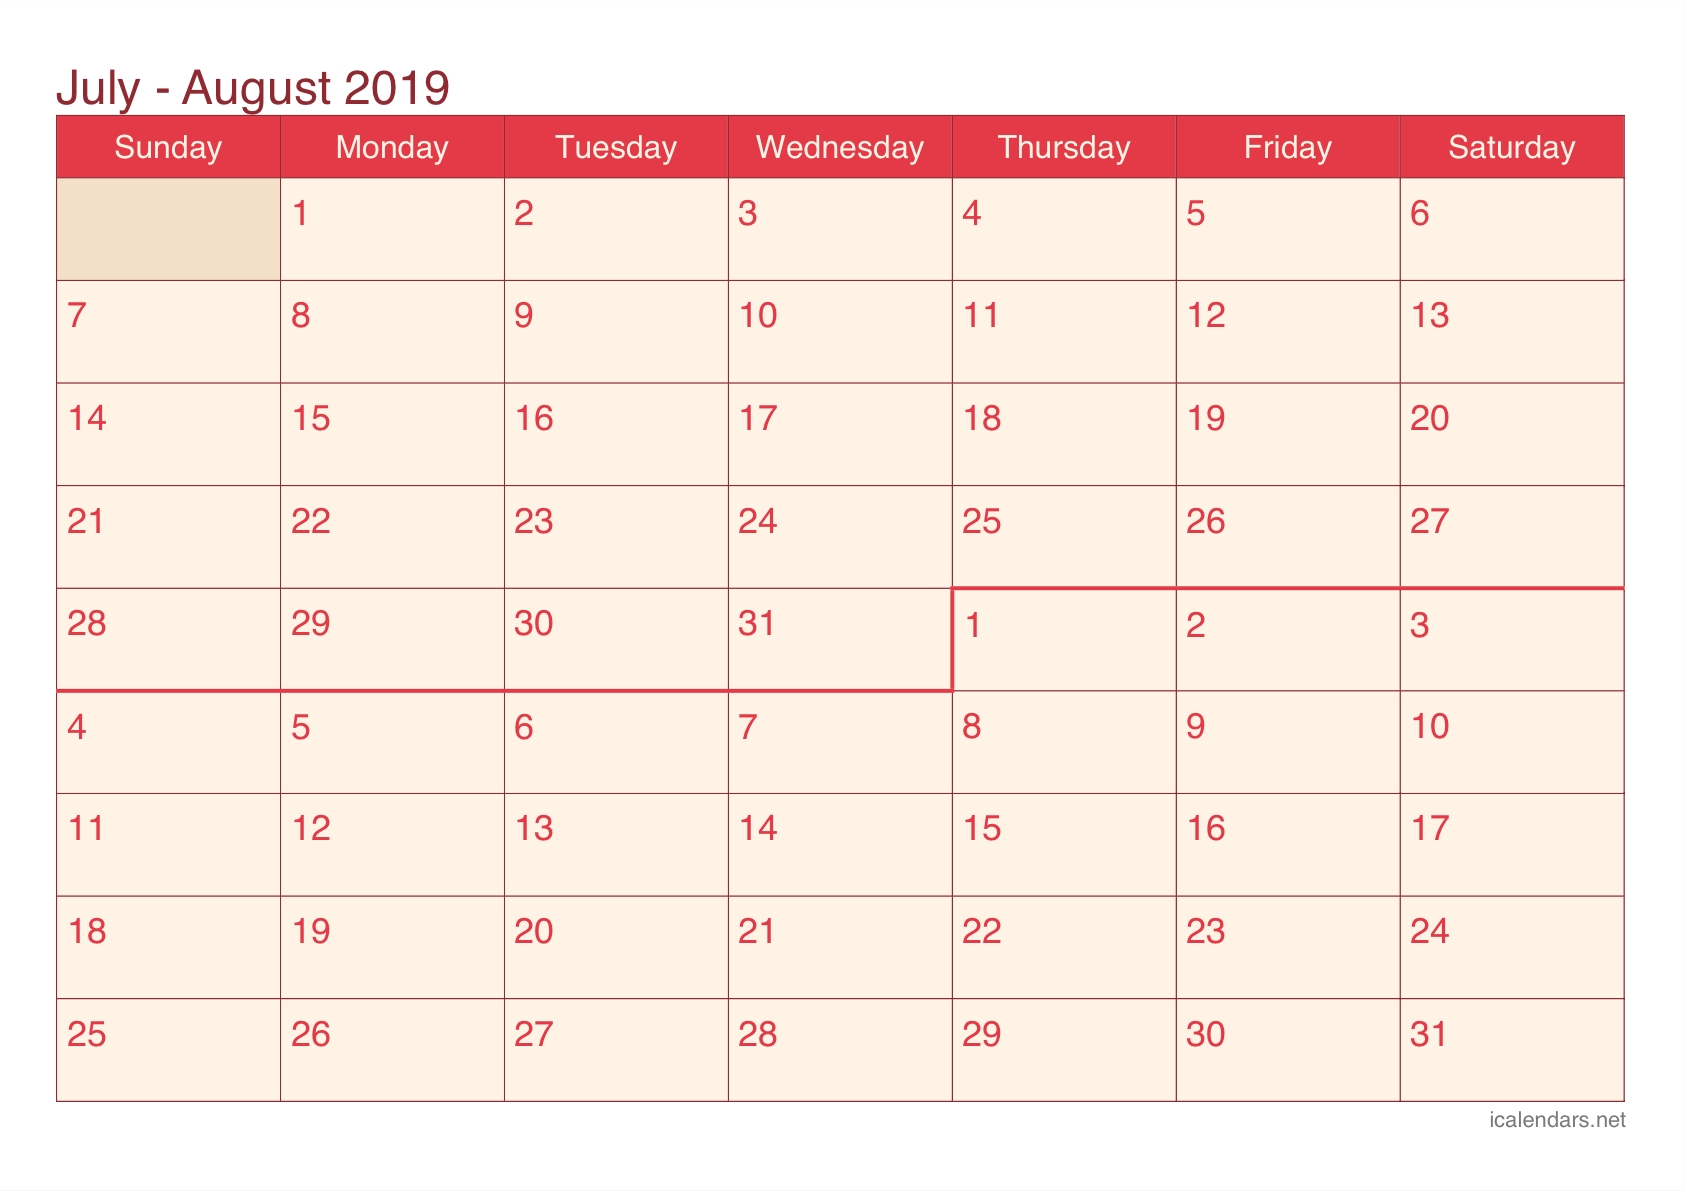 July And August 2019 Printable Calendar - Icalendars throughout July And August Blank Calendar